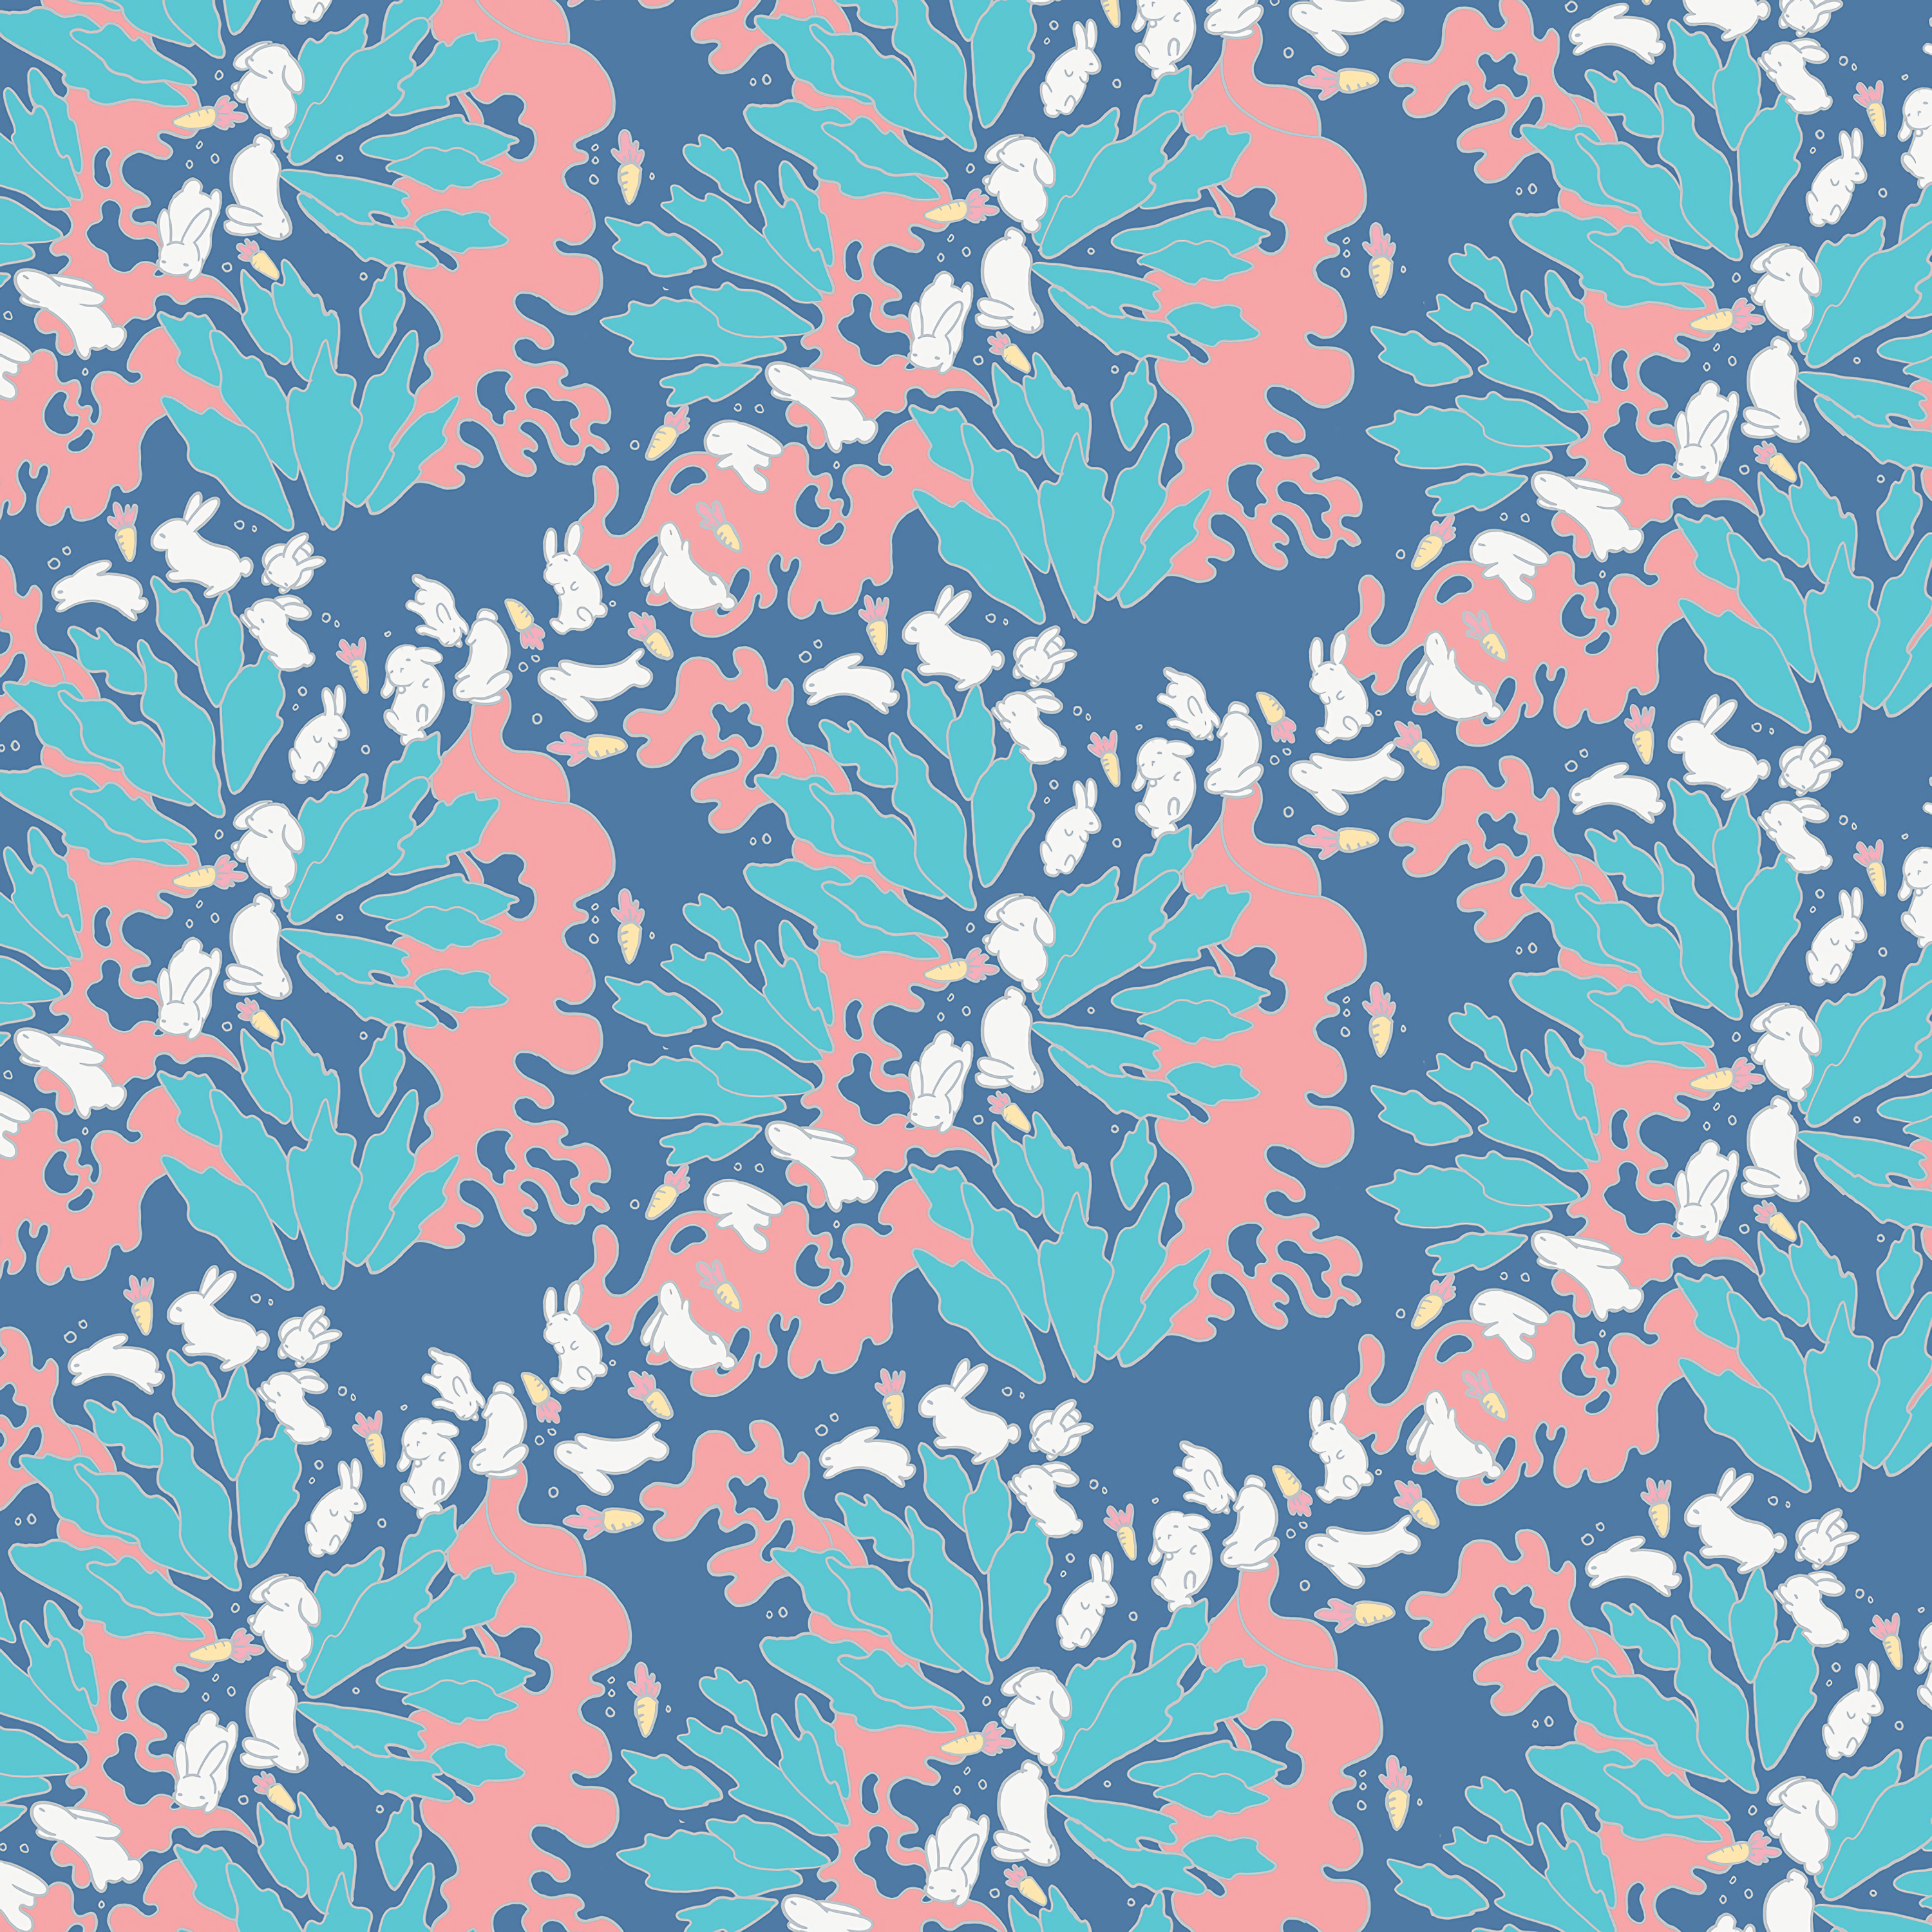 141522 download wallpaper Leaves, Rabbits, Pattern, Texture, Textures, Carrot screensavers and pictures for free